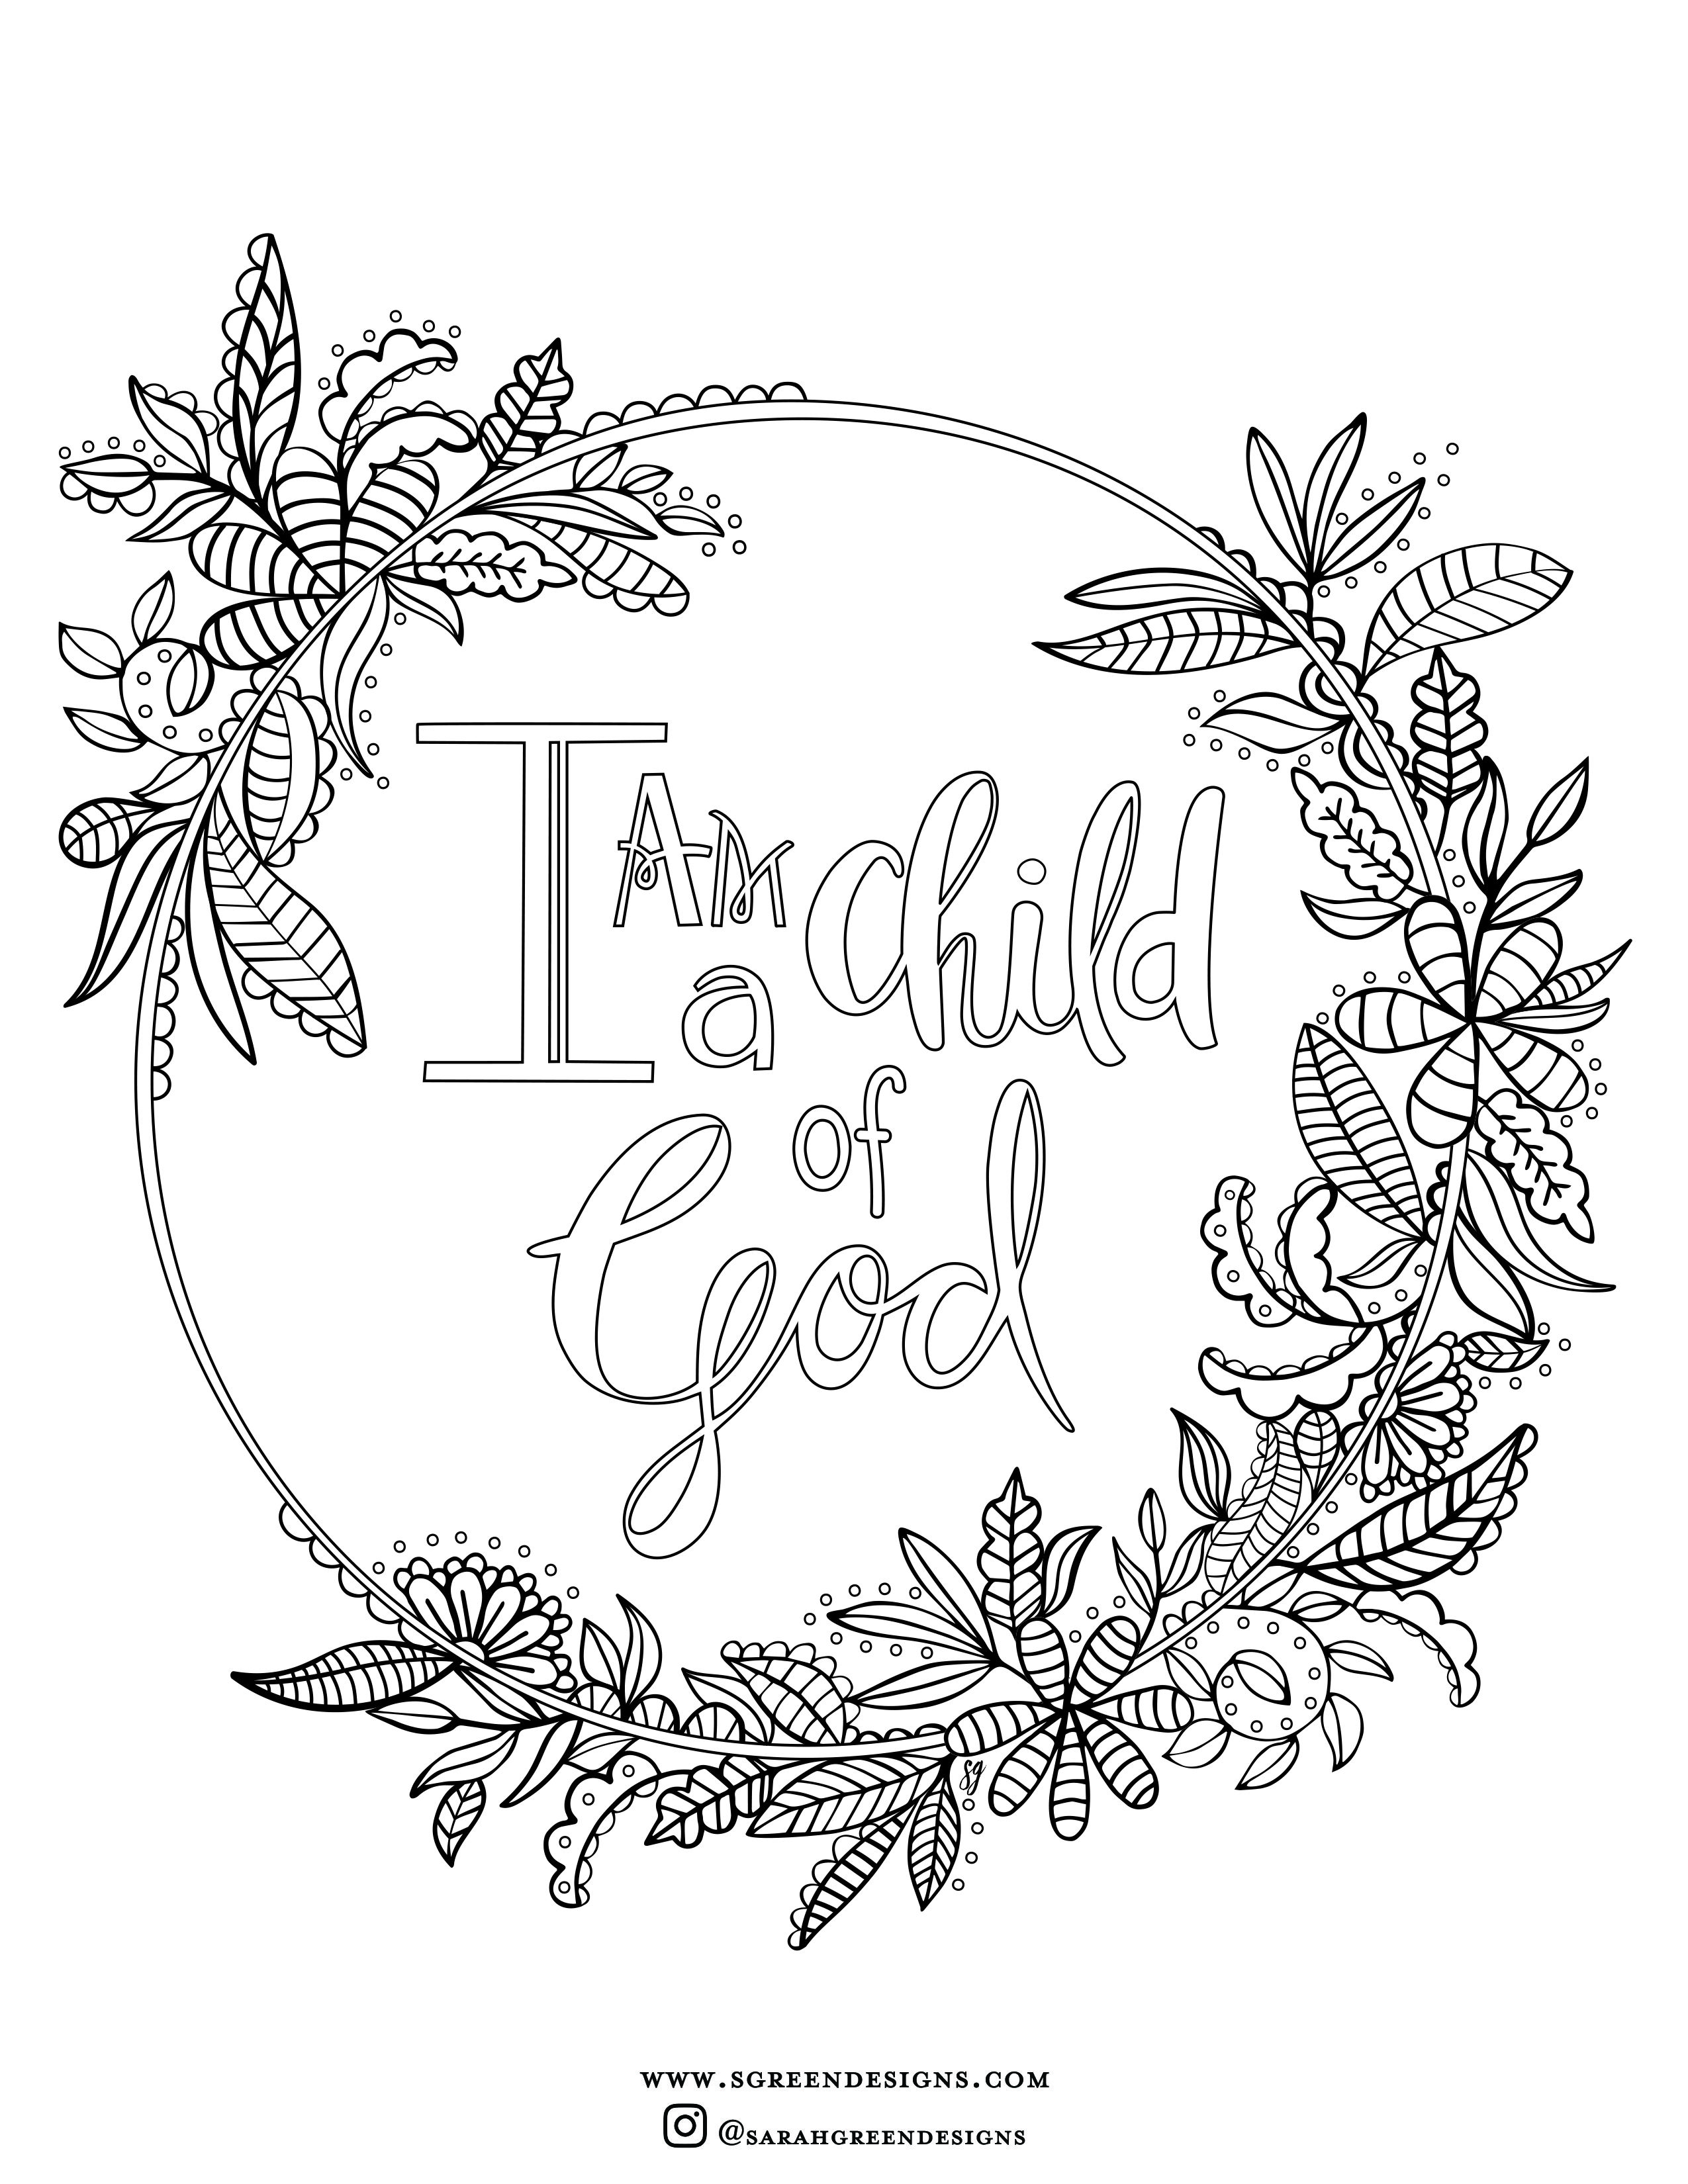 - Free Coloring Page, I Am A Child Of God, Christian Coloring Page